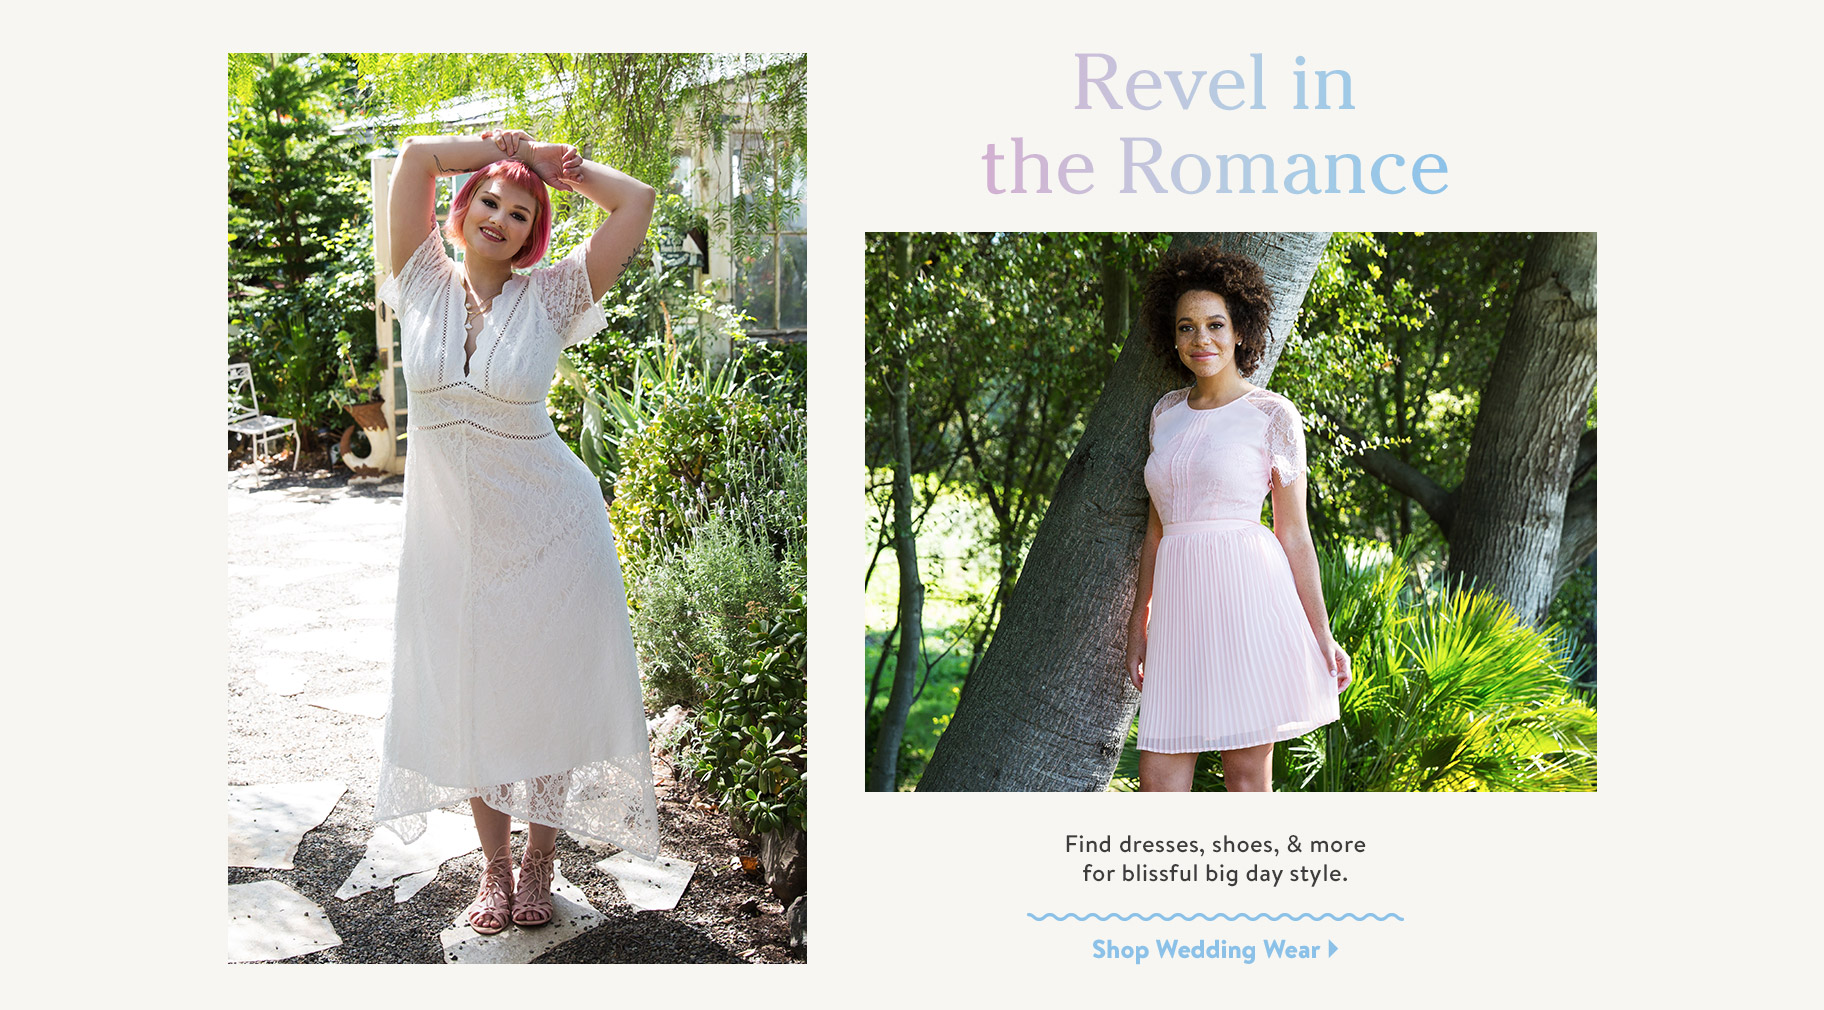 Revel in the Romance. Find dresses, shoes, & more for blissful big day style. Shop Wedding Wear.